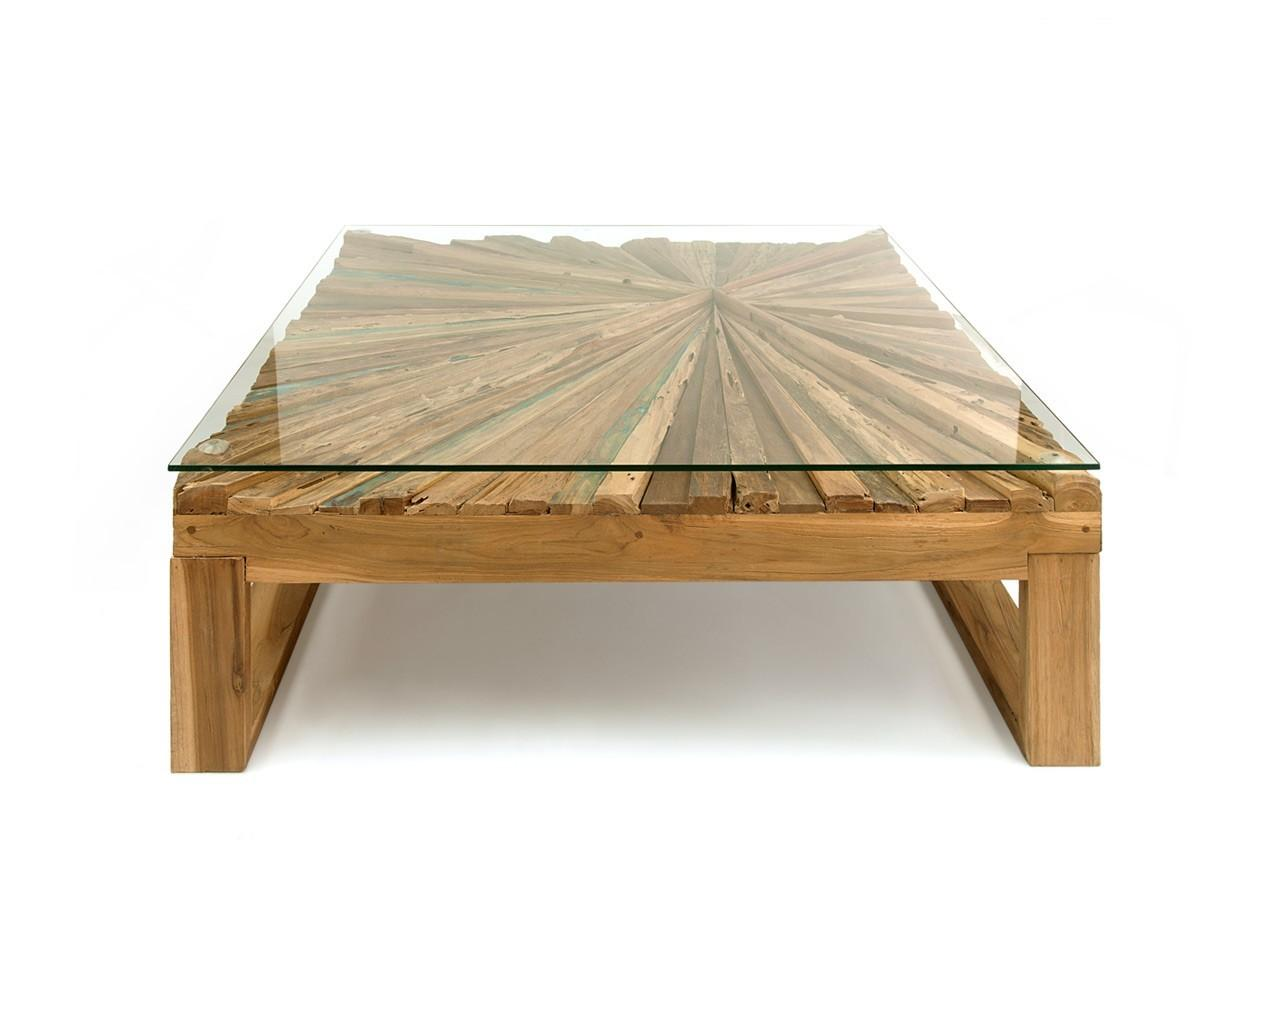 Most Inspirational Rustic Wood Coffee Table Ideas